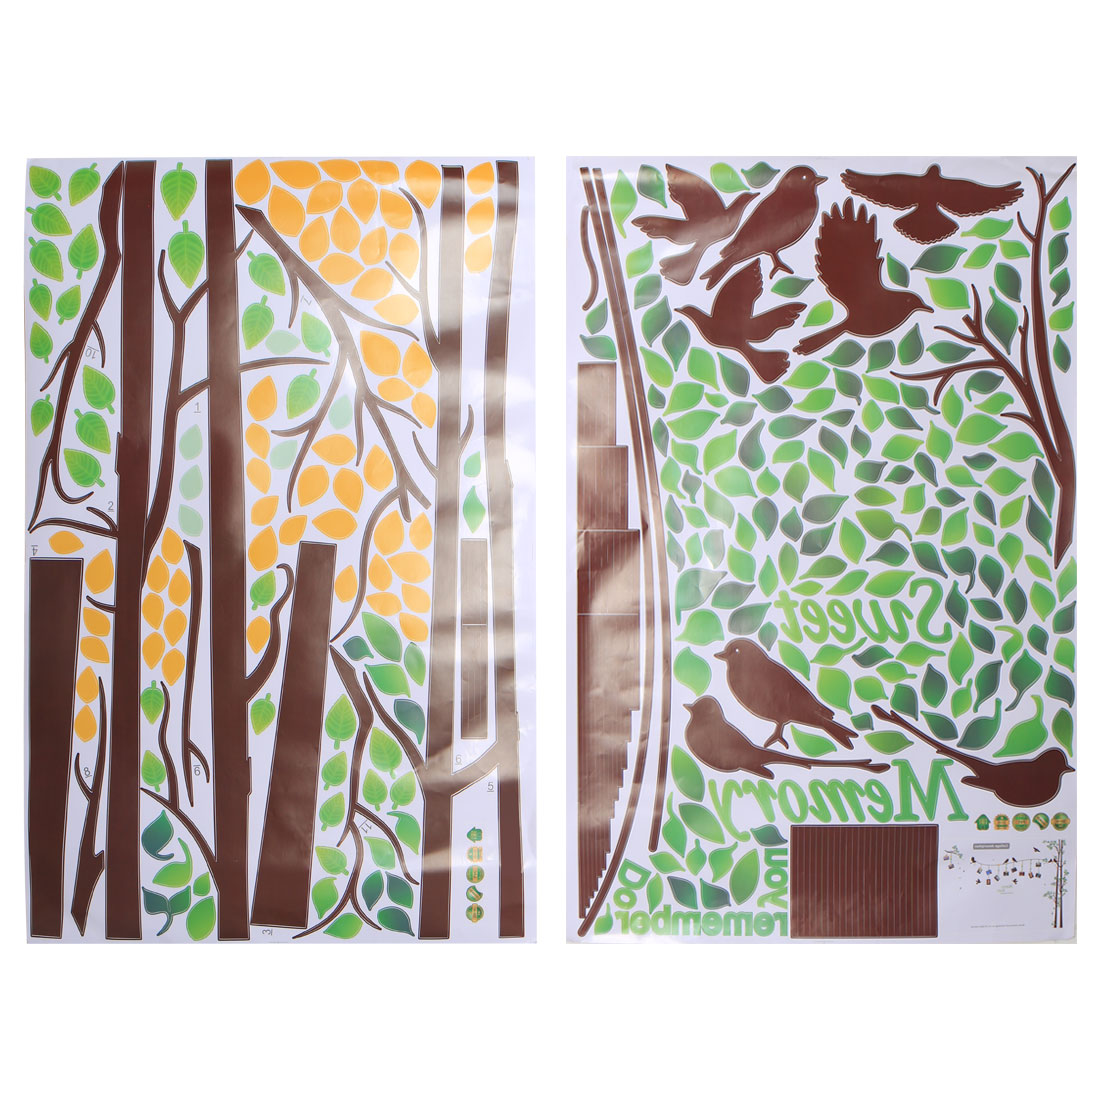 Tree Pattern Wall Sticker Self-stick Removable Decal for Living Room